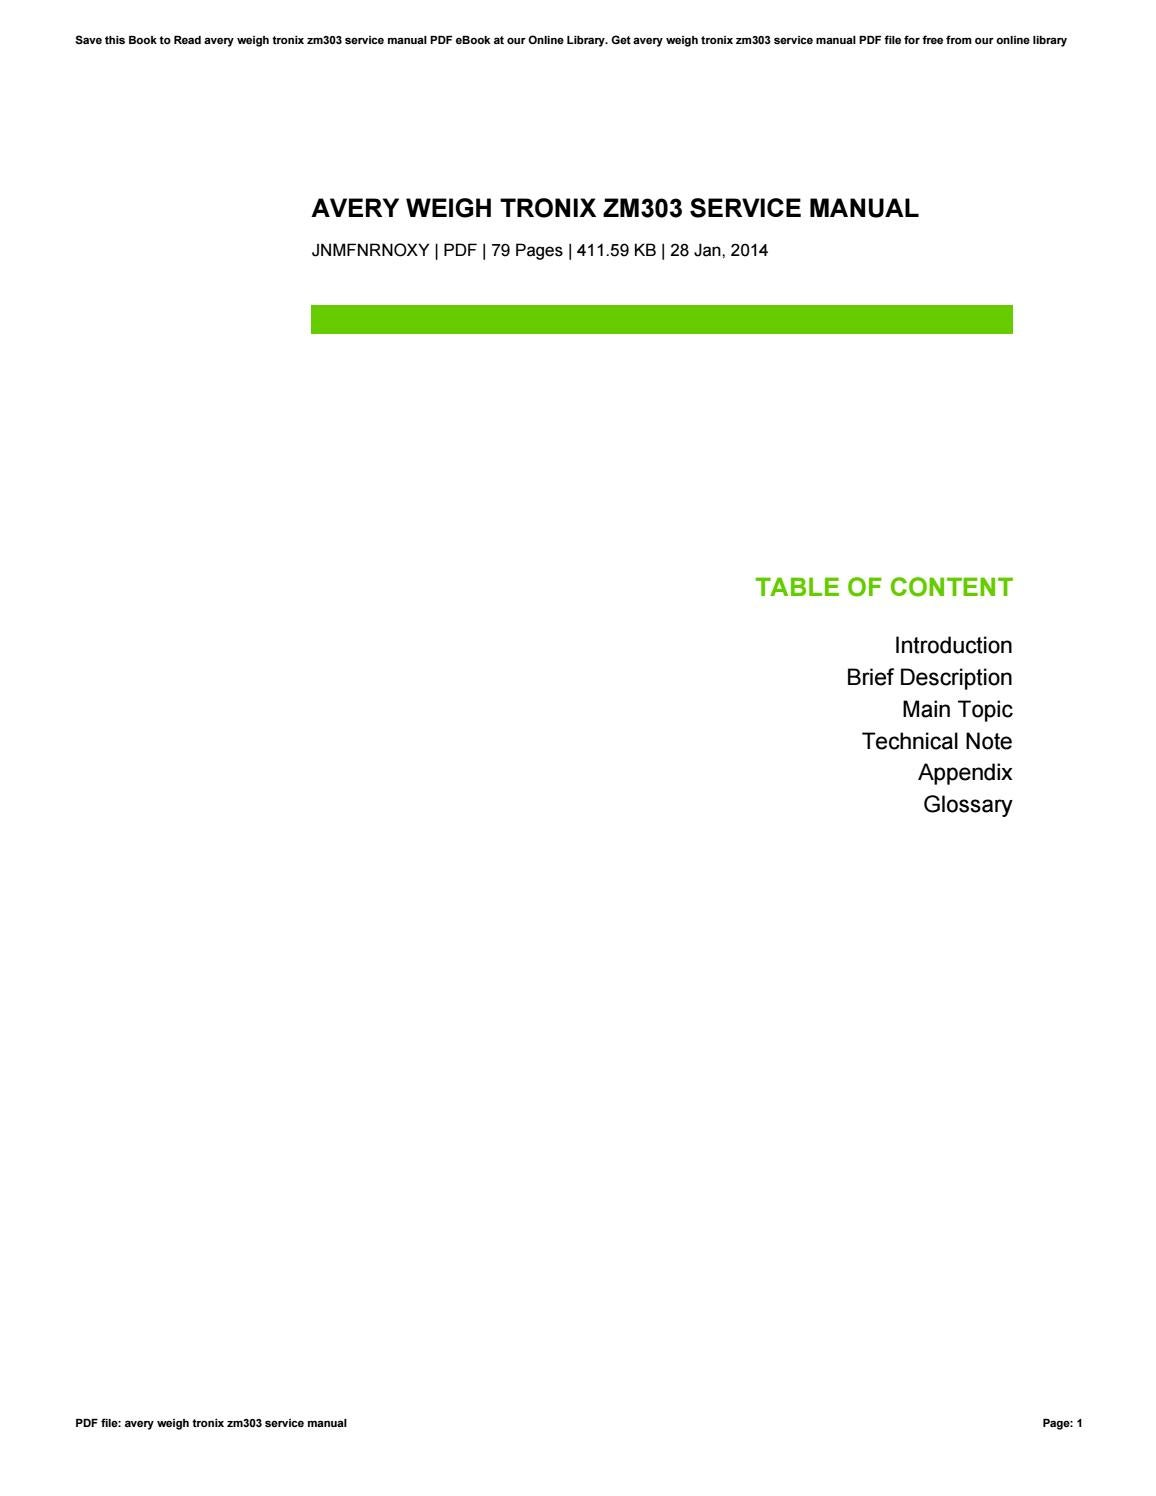 avery weigh tronix zm303 service manual by annettesherry1476 issuu rh issuu com avery weigh tronix e1205 service manual avery weigh tronix zm301 service manual